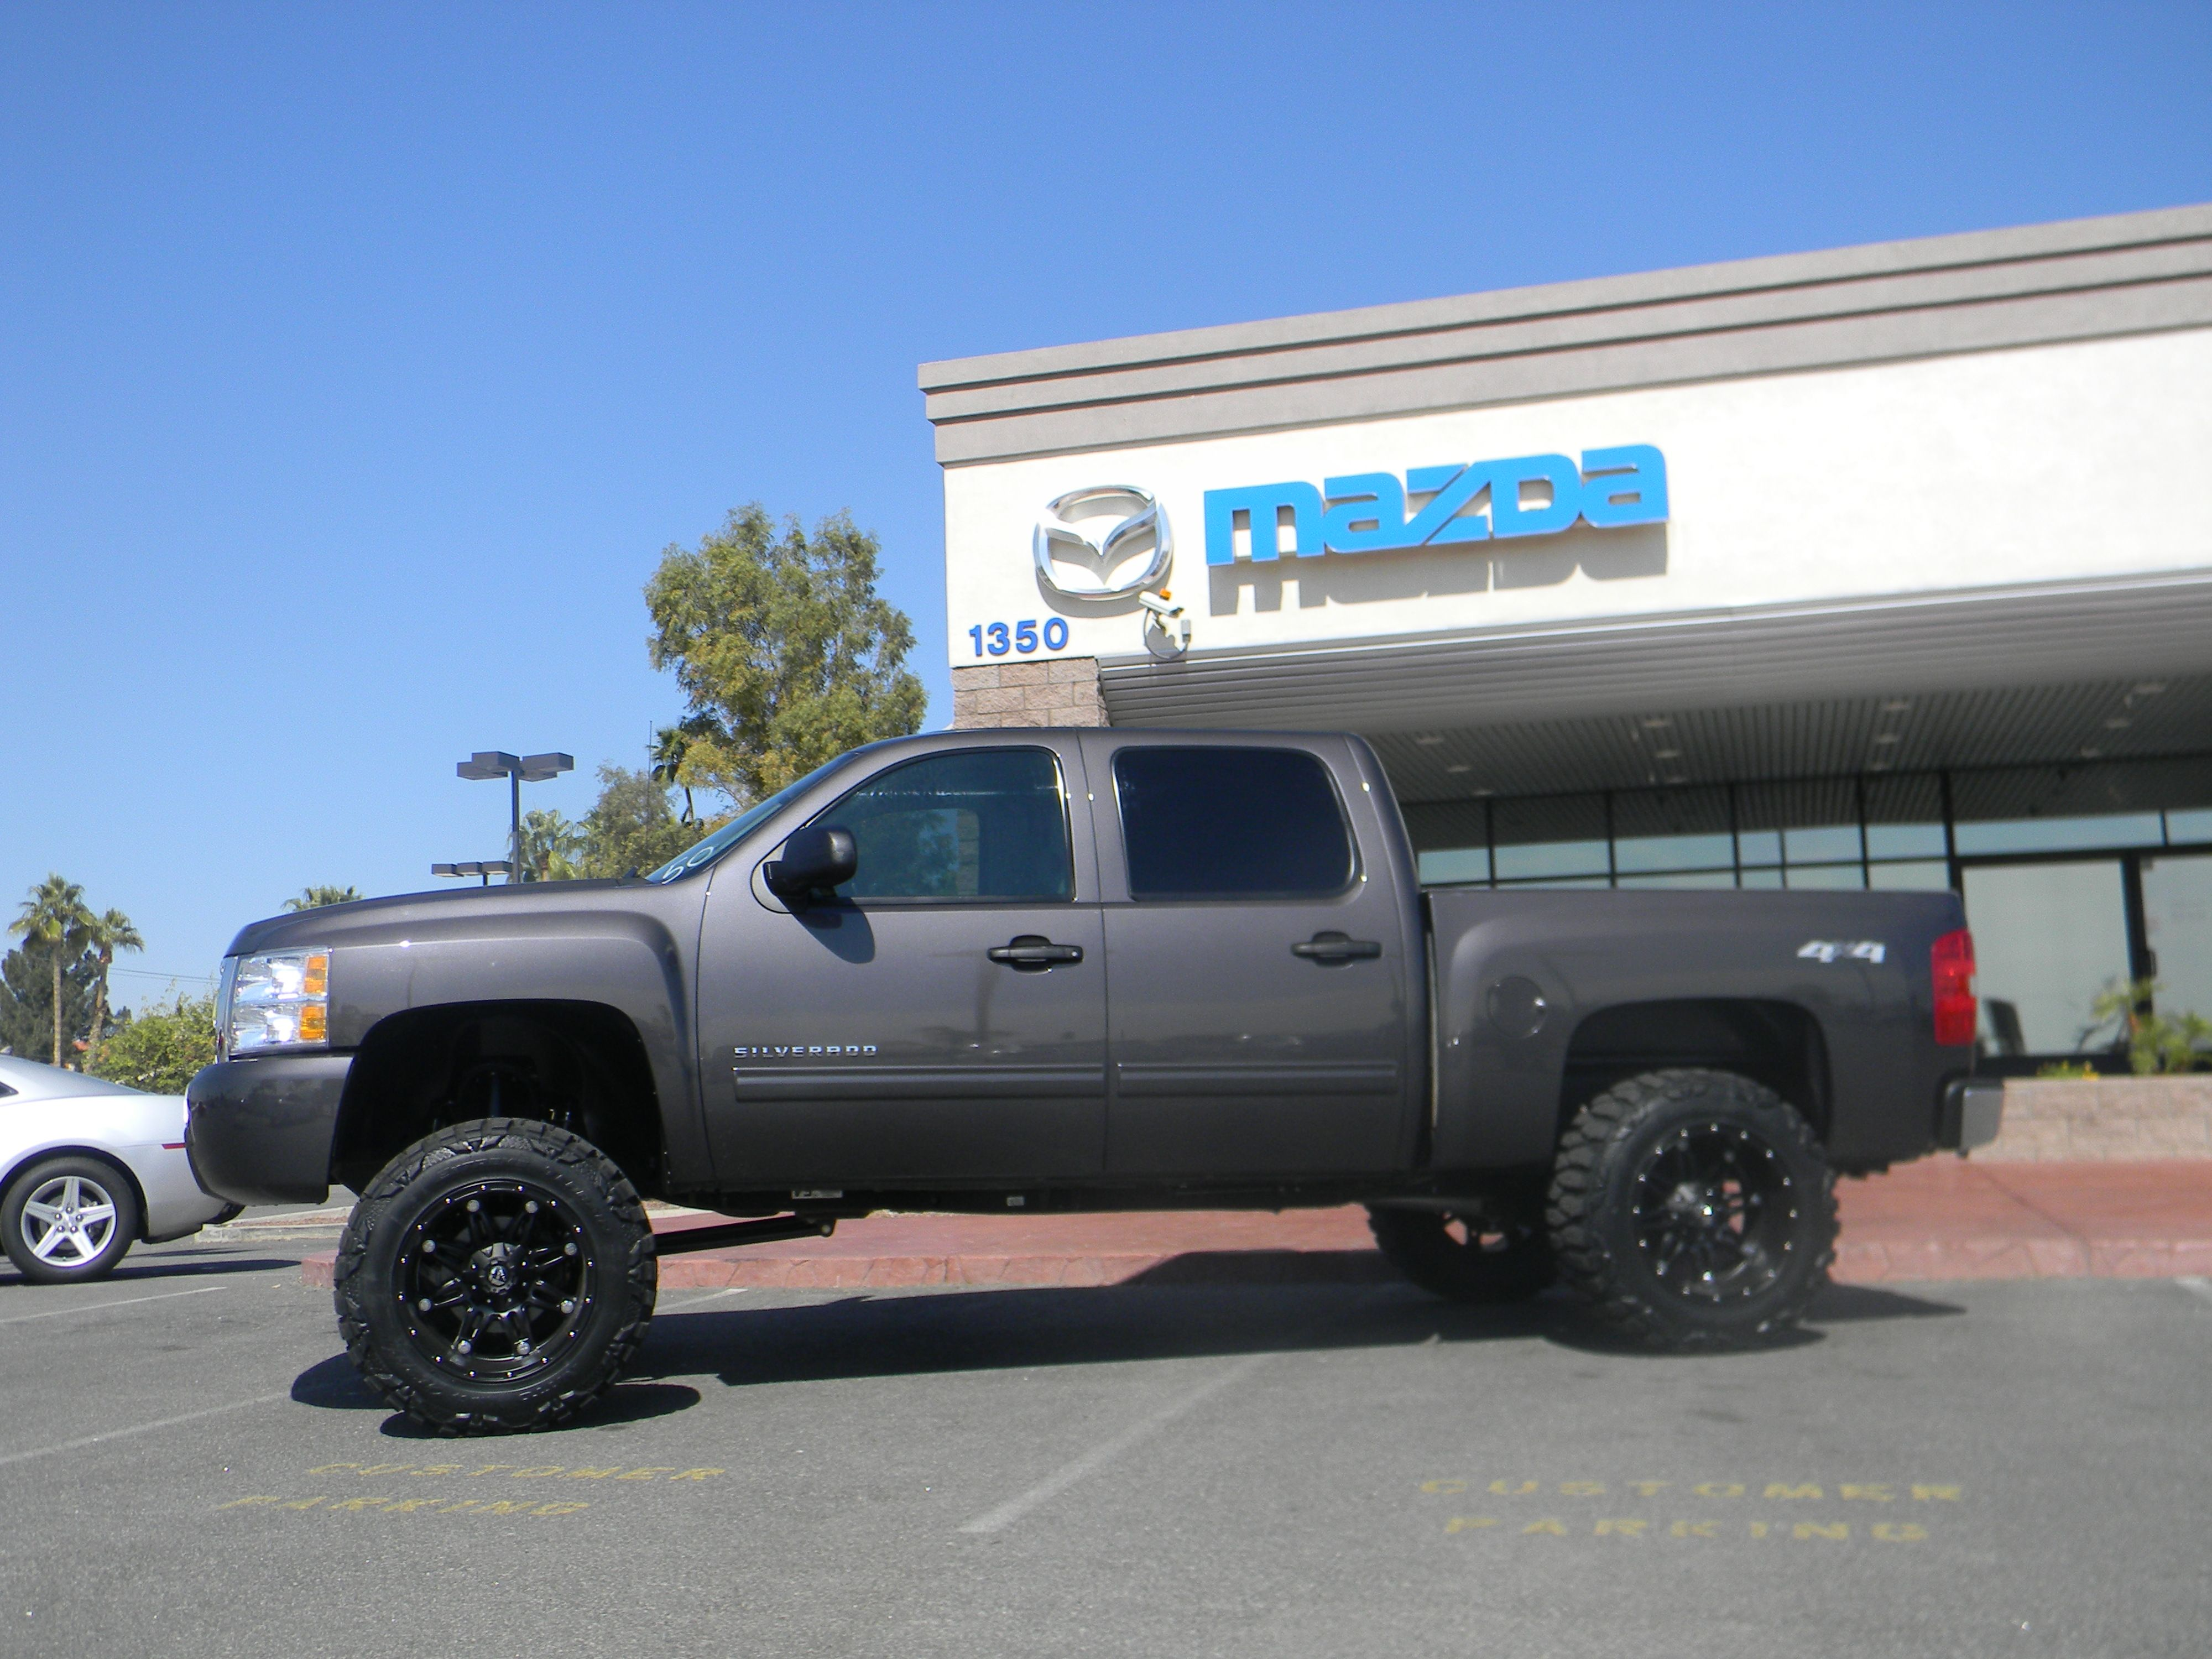 2010 lifted chevy truck nice tires and rims